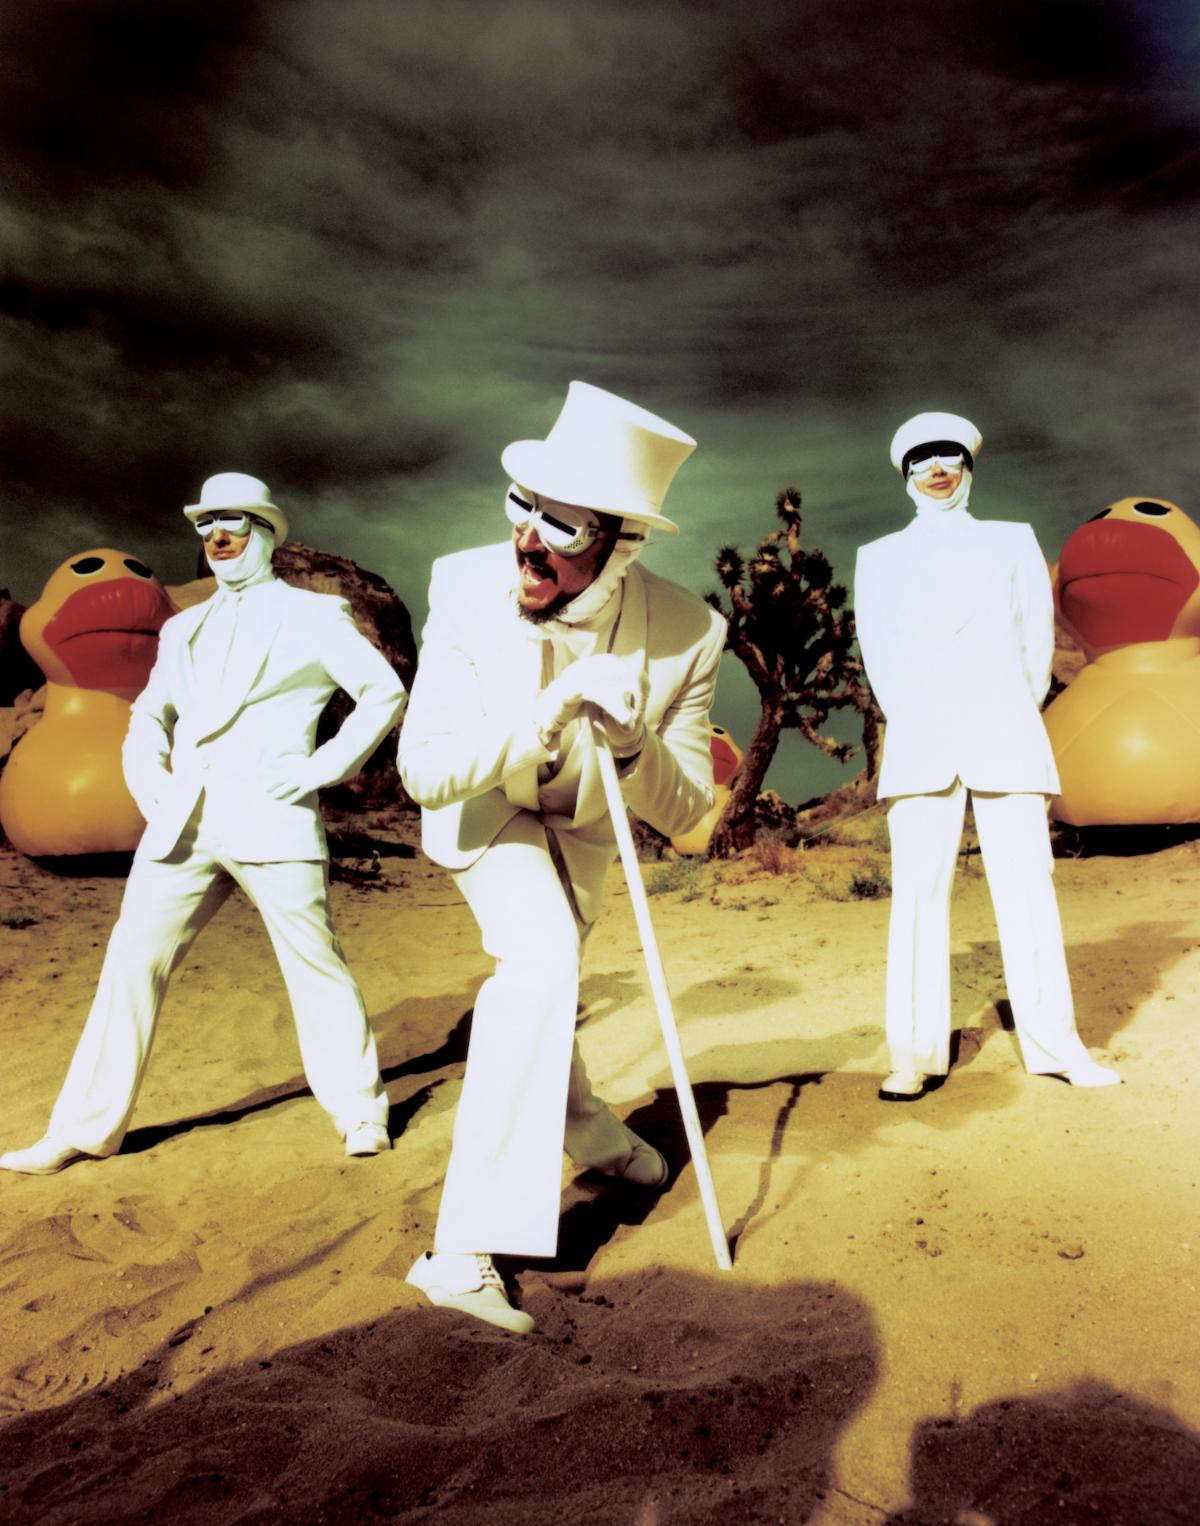 Primus announce Rush tribute tour; playing 'A Farewell to King's' in full